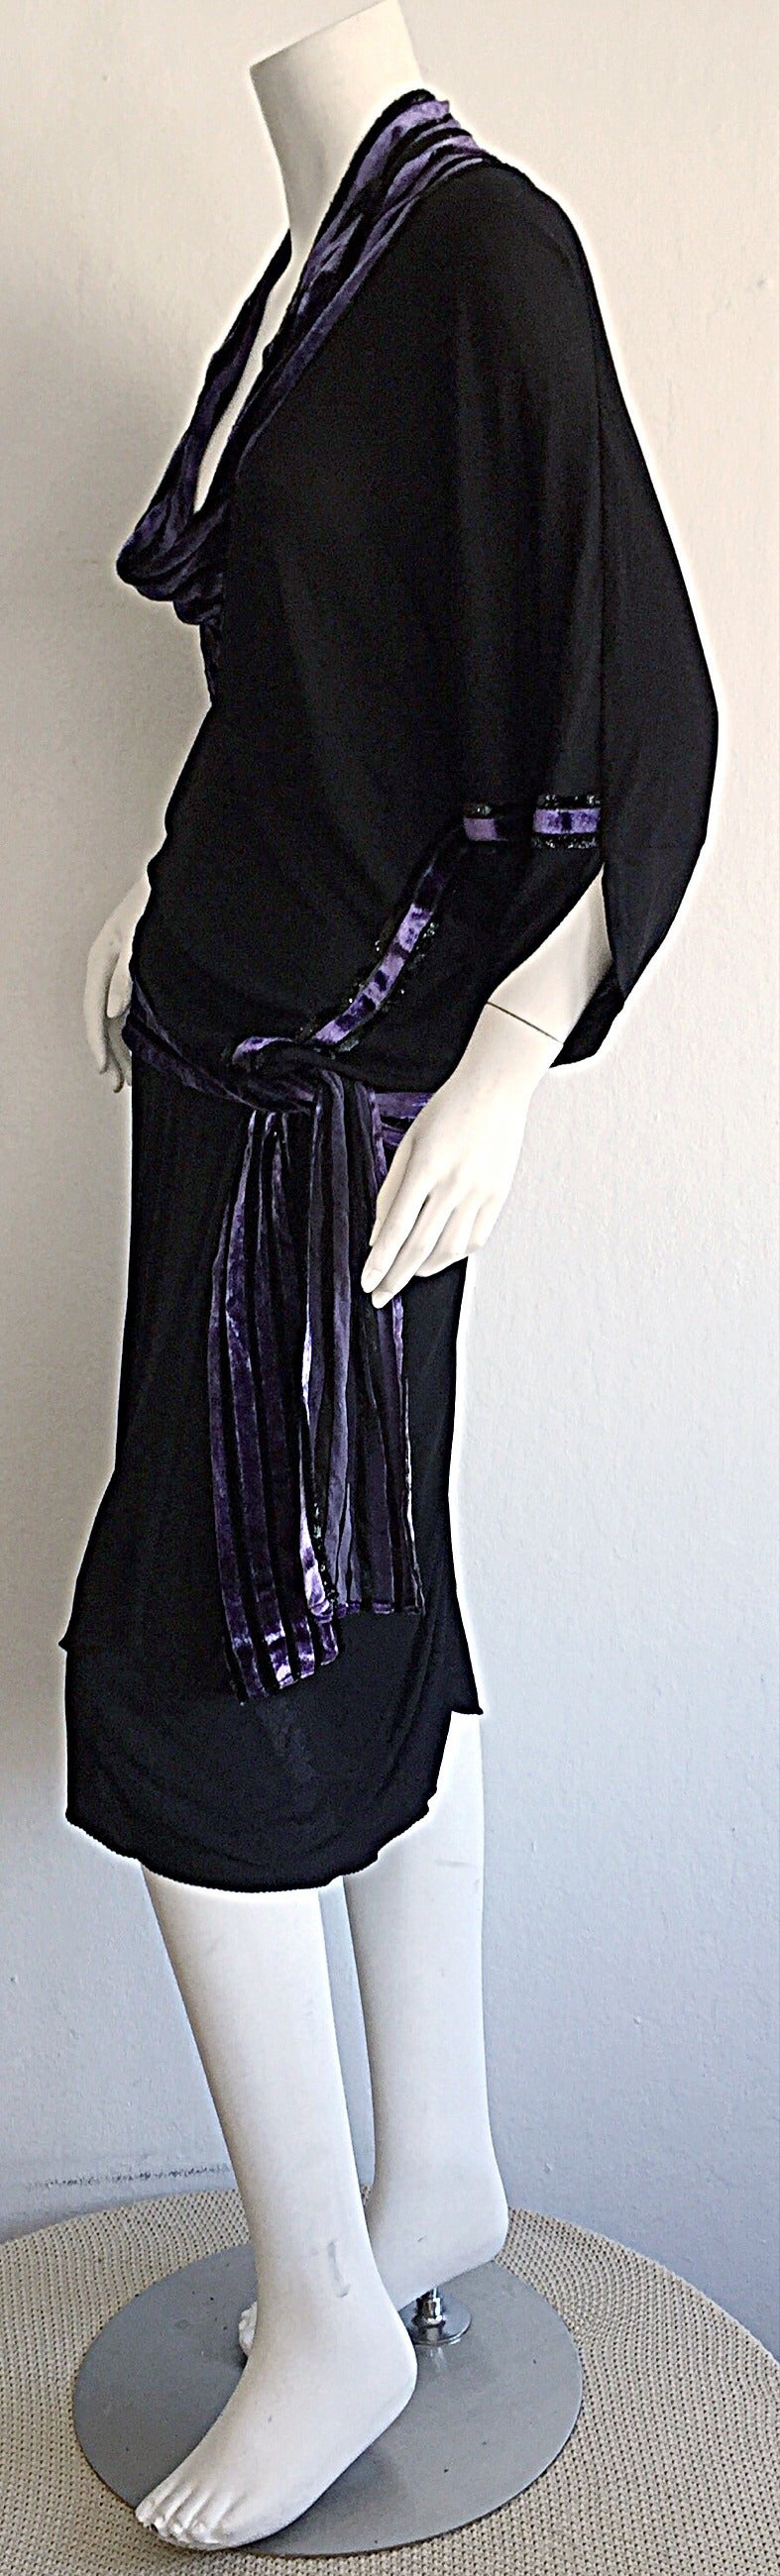 "Iconic Vintage Janice Wainwright Black Flapper Style "" Roaring 20s"" Jersey Dress 8"